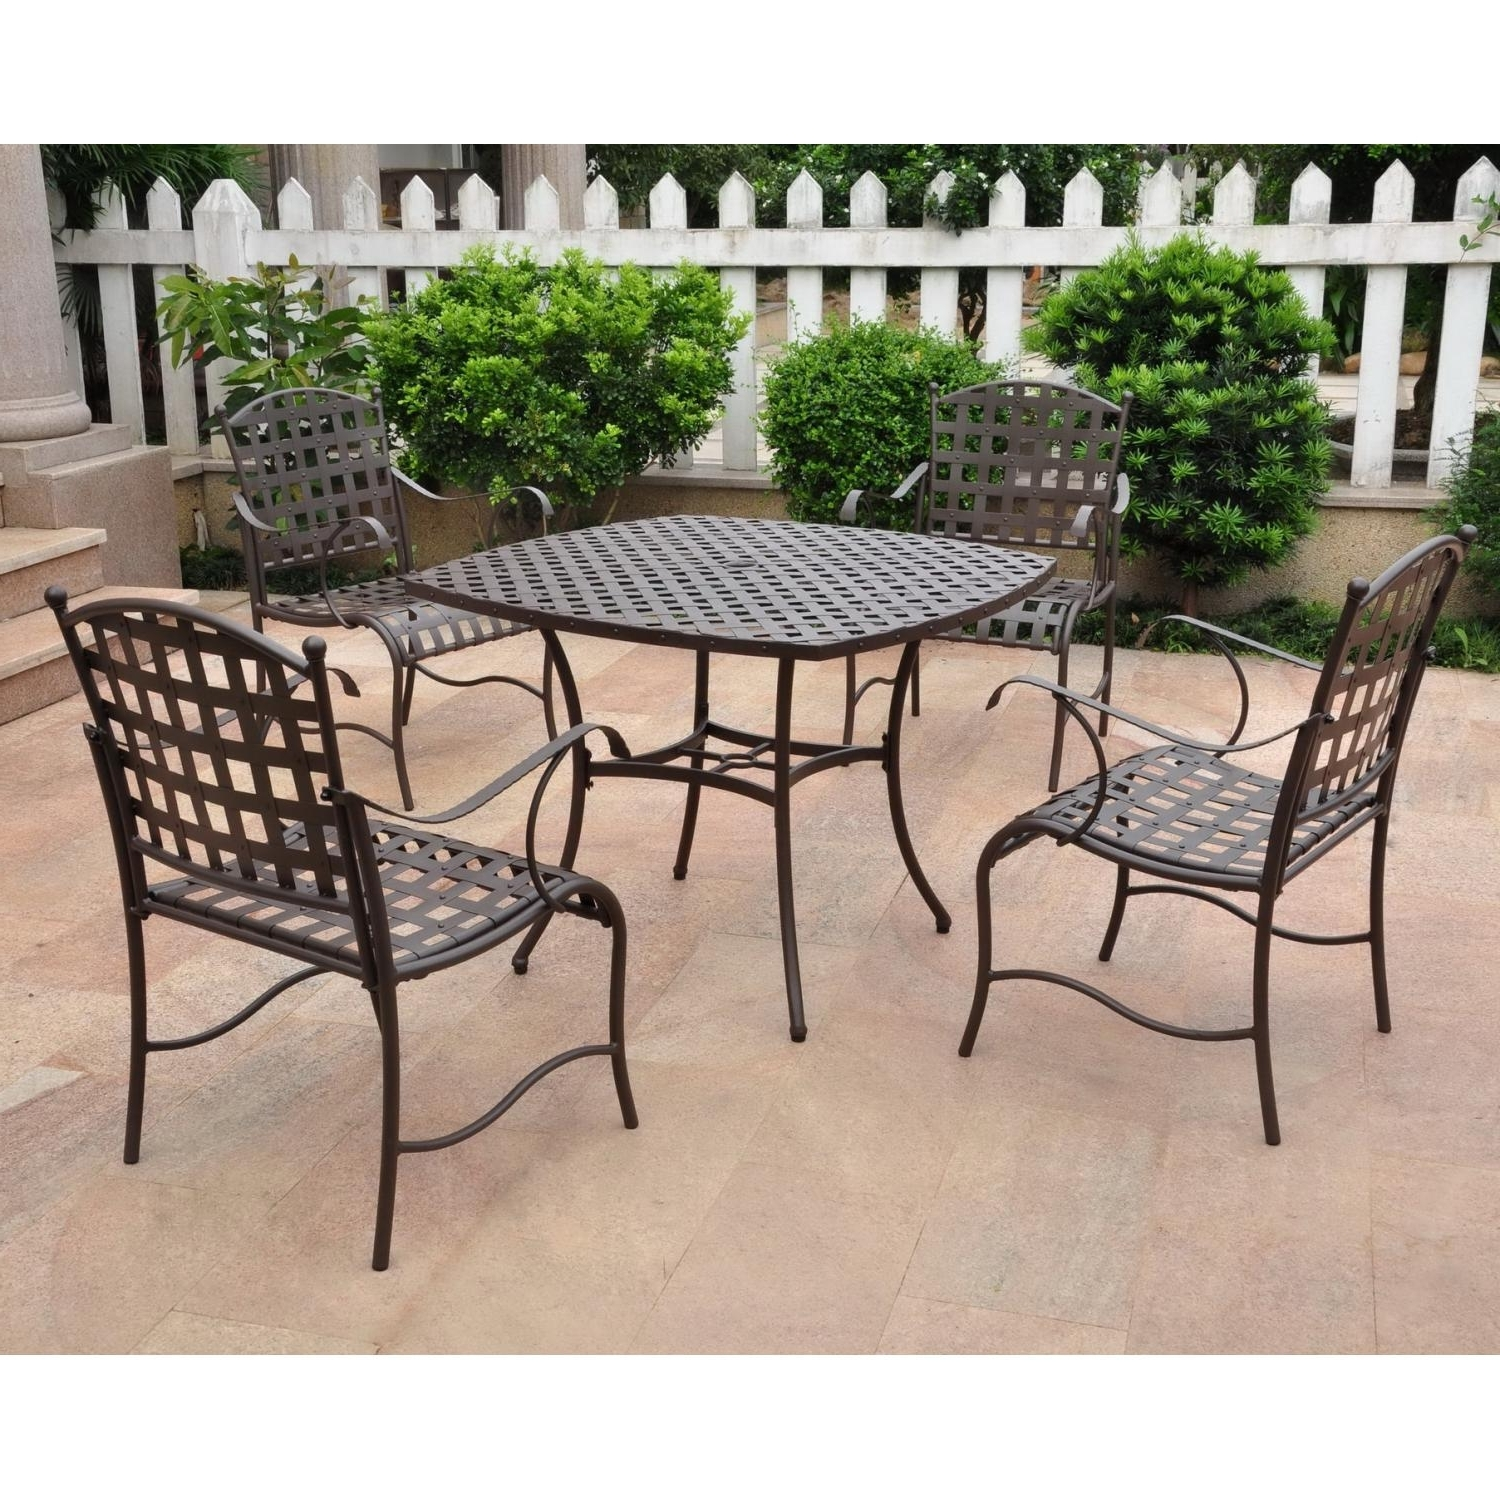 Furniture: Simple Wrought Iron Patio Furniture On Concrete Flooring With Regard To Most Recently Released Wrought Iron Patio Conversation Sets (View 6 of 15)